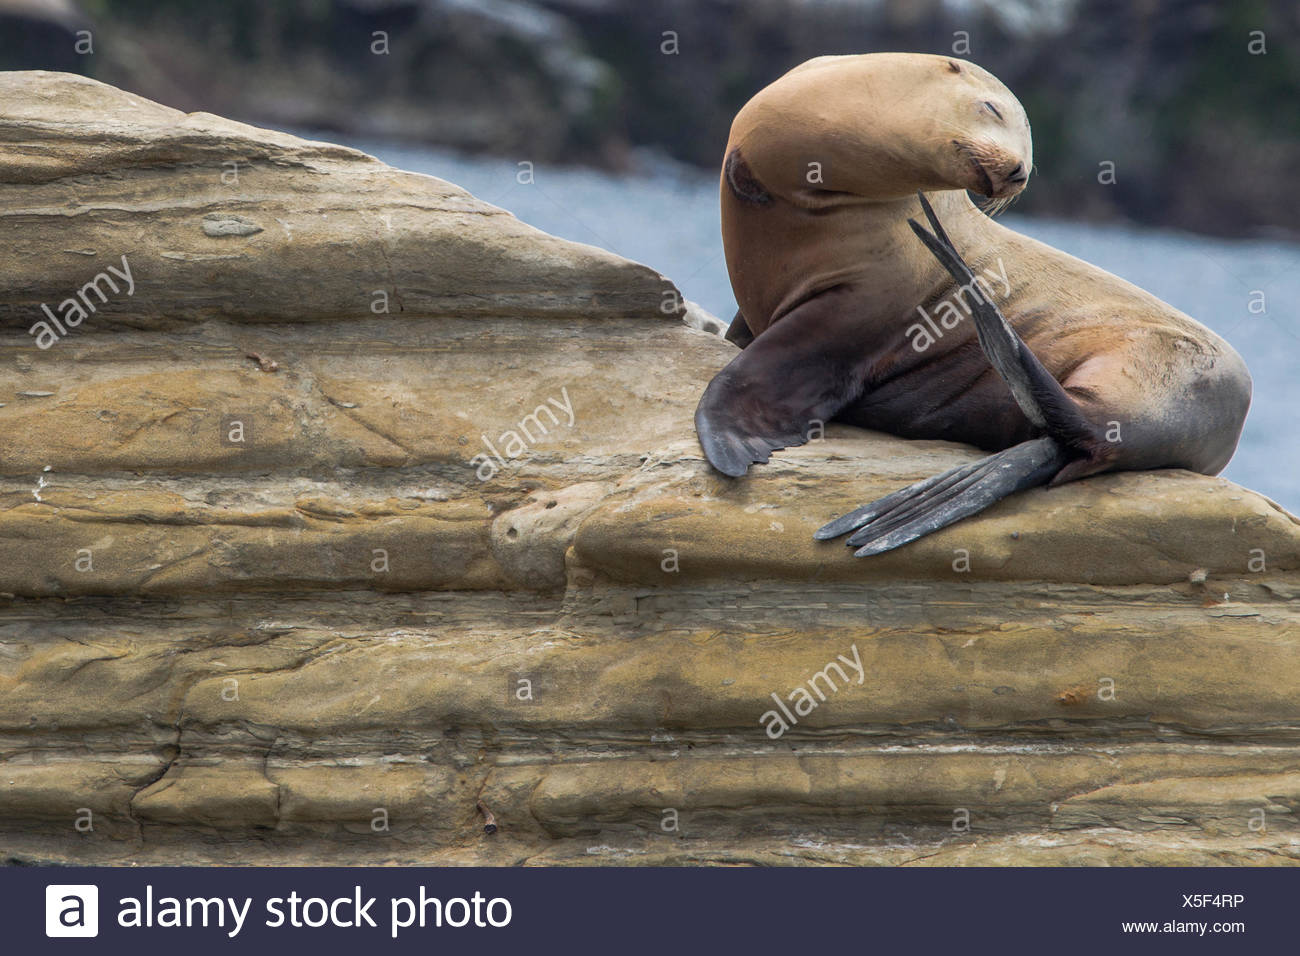 A California sea lion, Zalophus californianus, basking on the rocks at Boomer Beach. - Stock Image